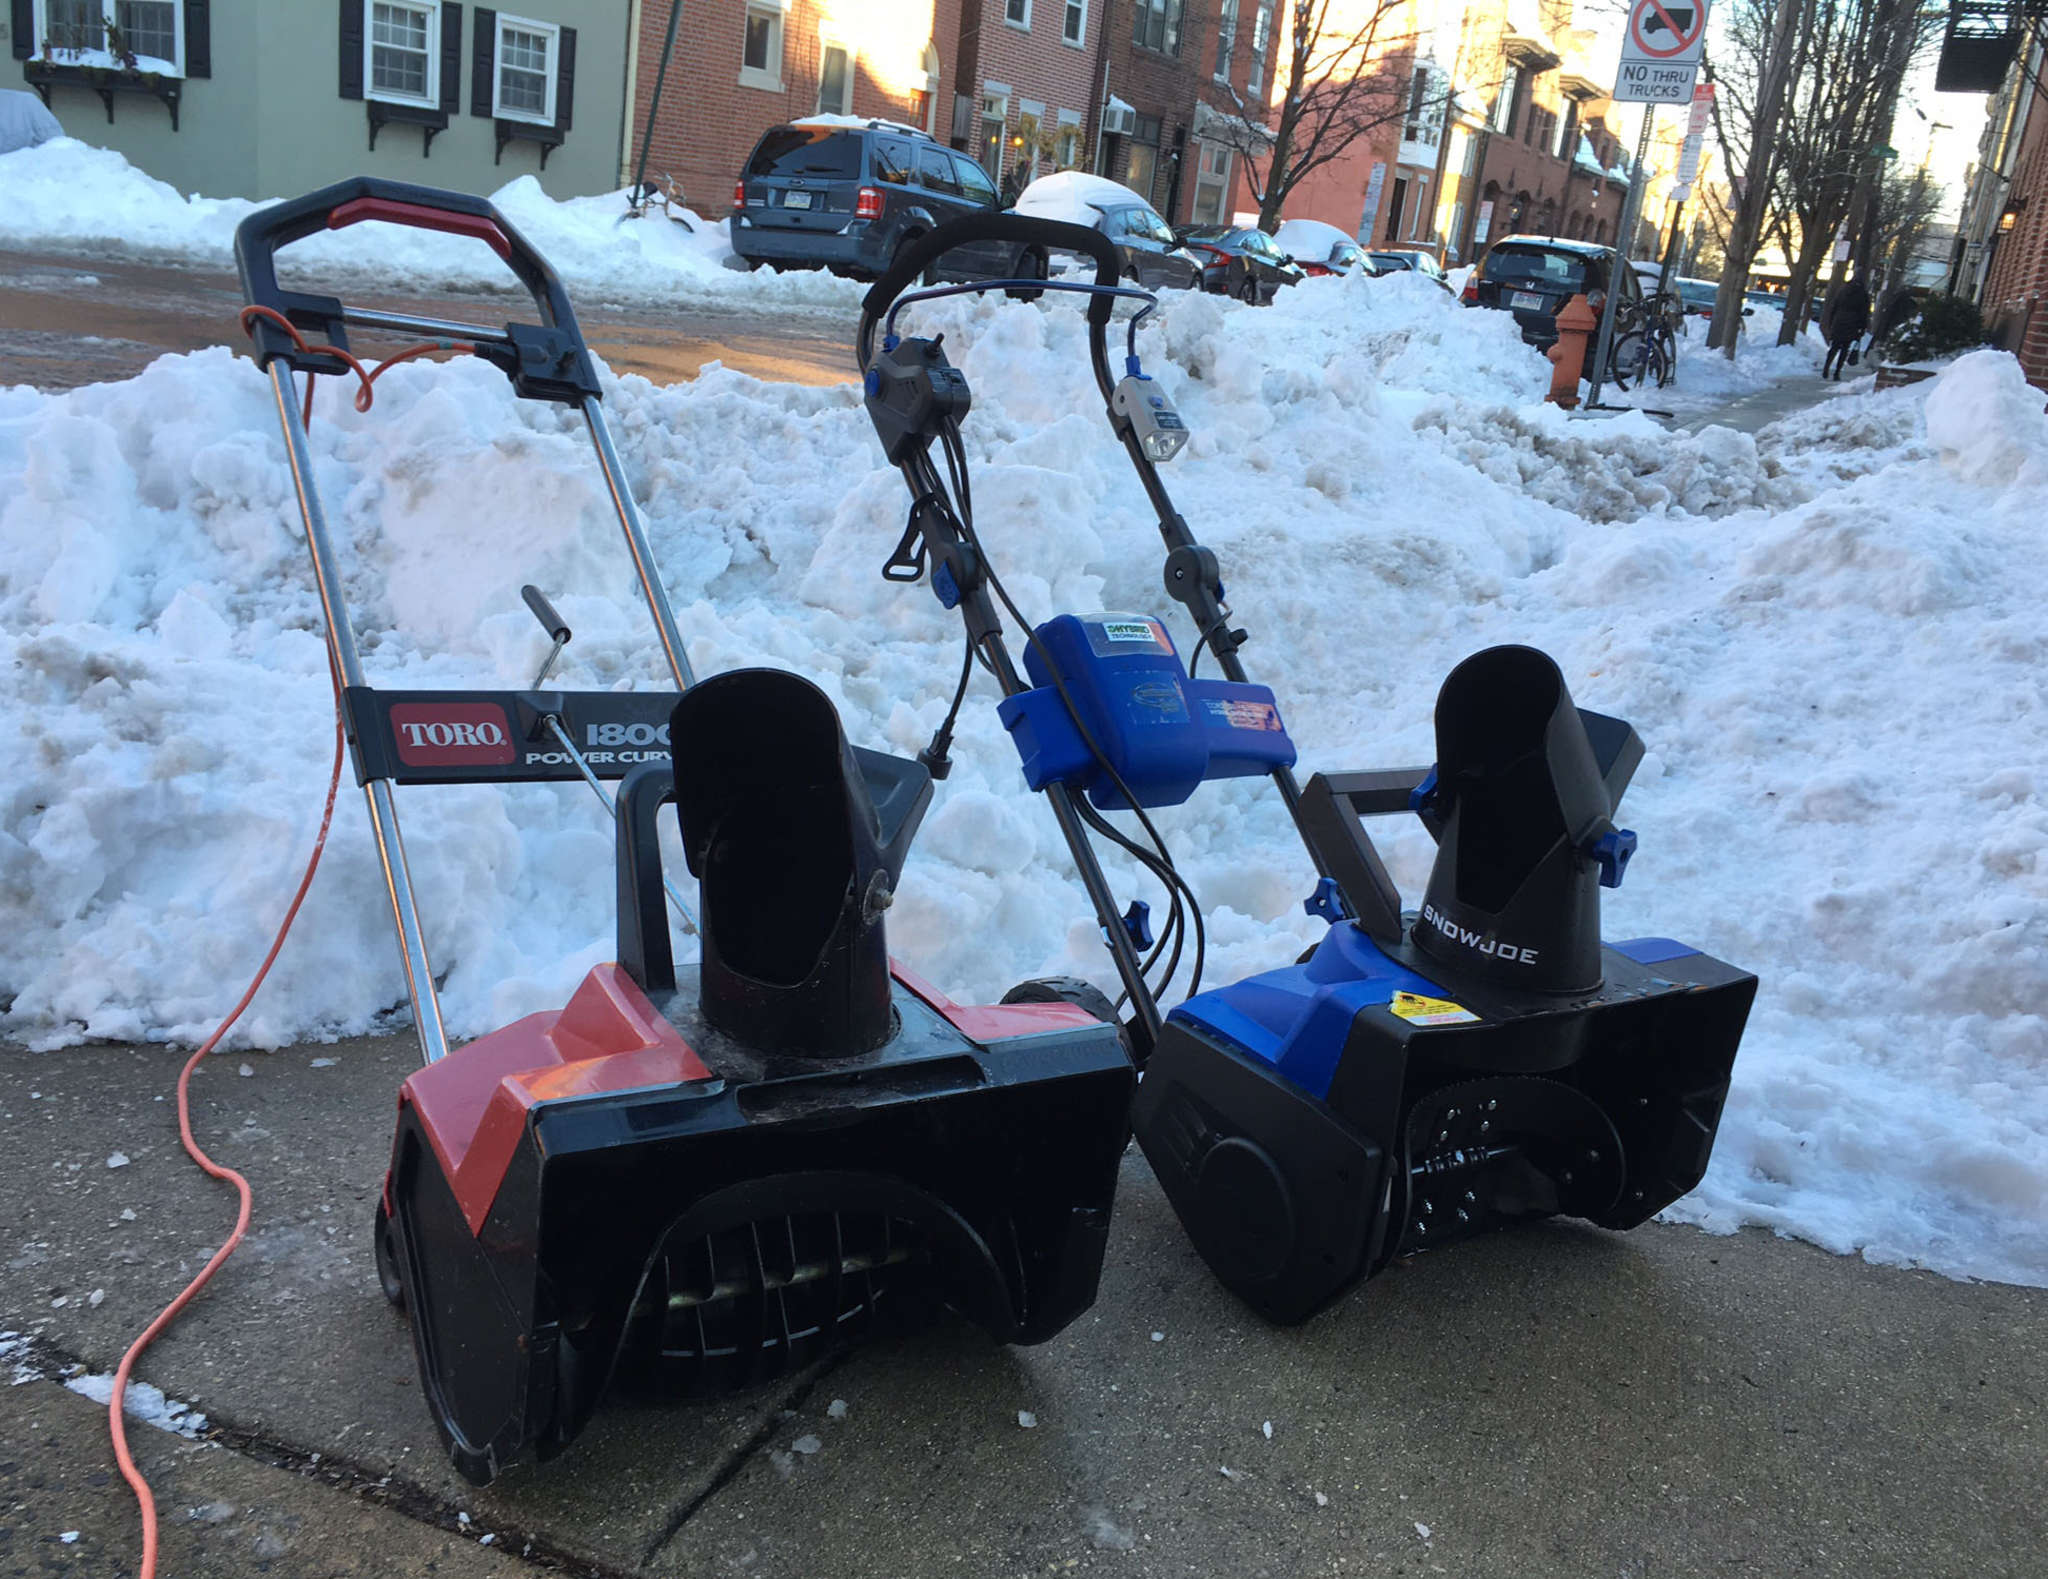 Hybrid Snow Joe (right) and plug-in Toro electric snow blowers have different benefits for cleanup.